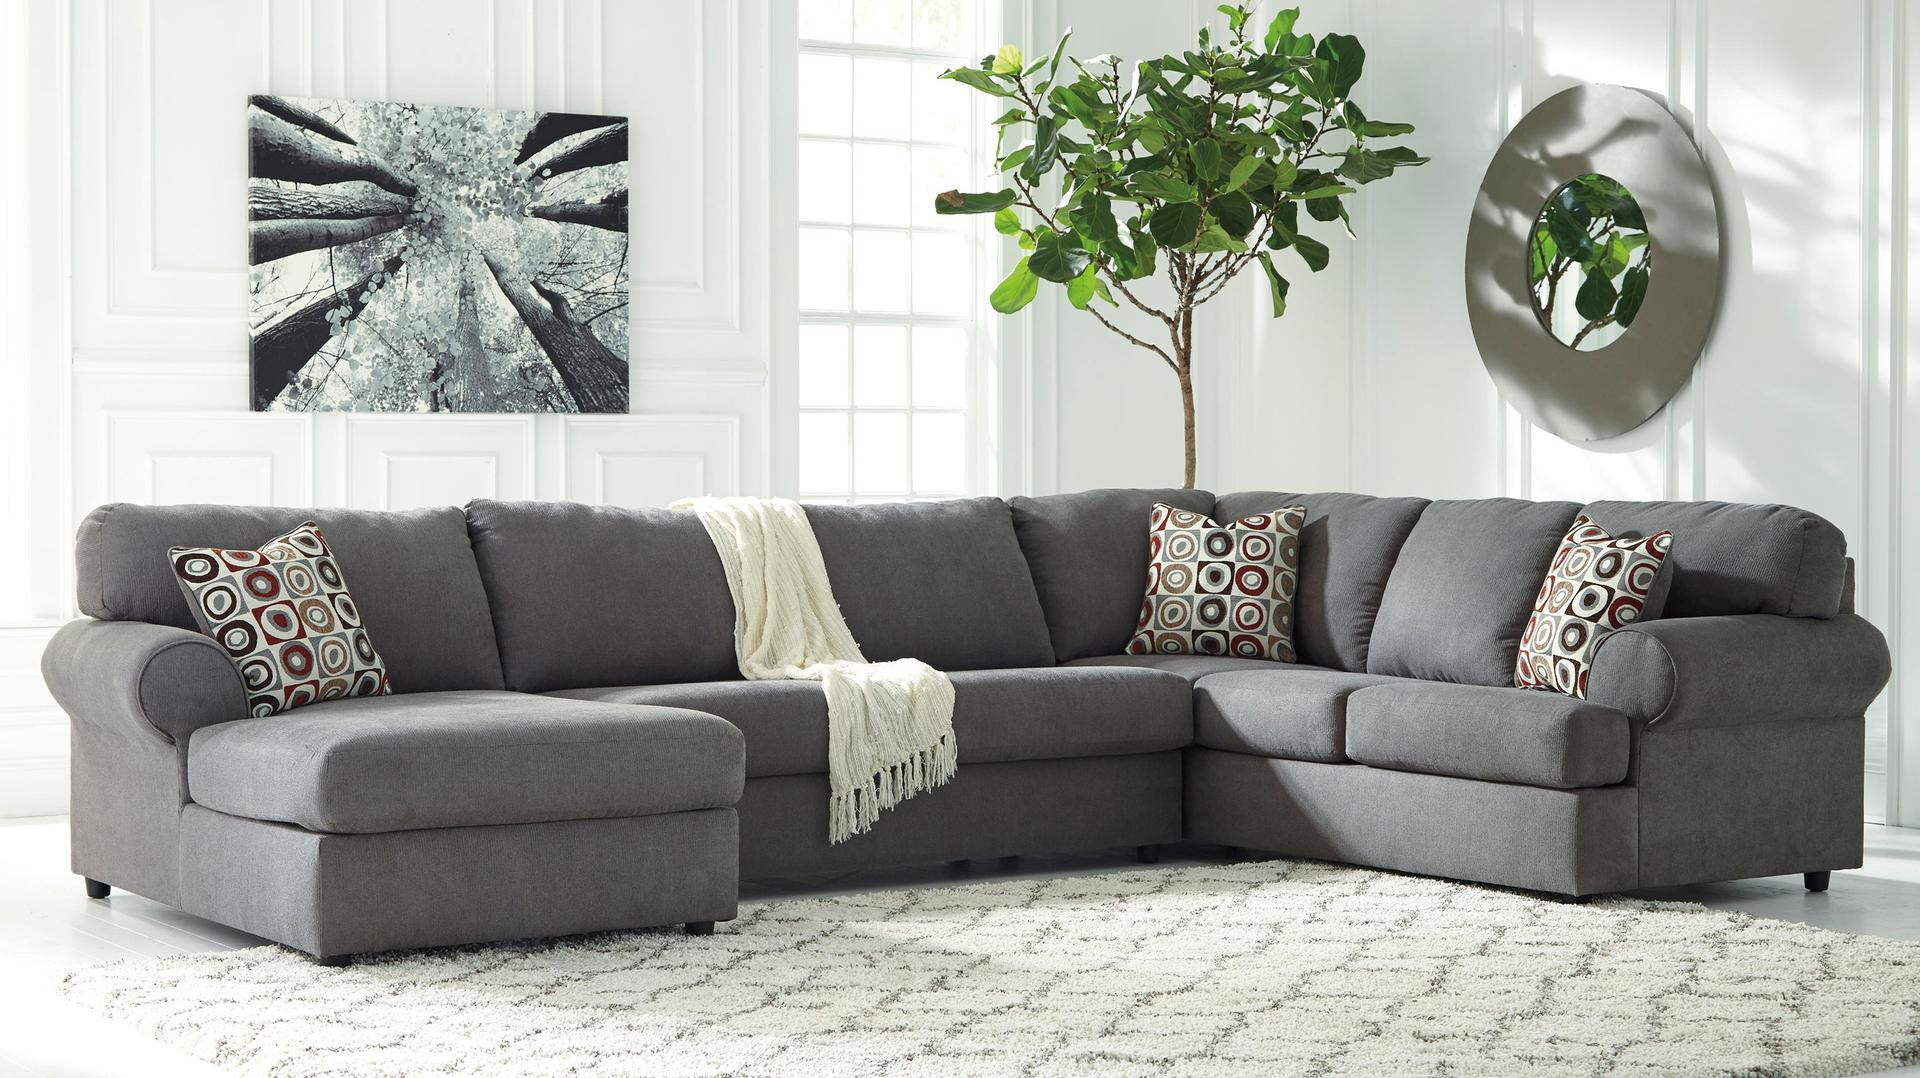 Destin Leather Piece Sectional Sofa With Power Recliners Couch With Well Liked Meyer 3 Piece Sectionals With Laf Chaise (View 15 of 20)